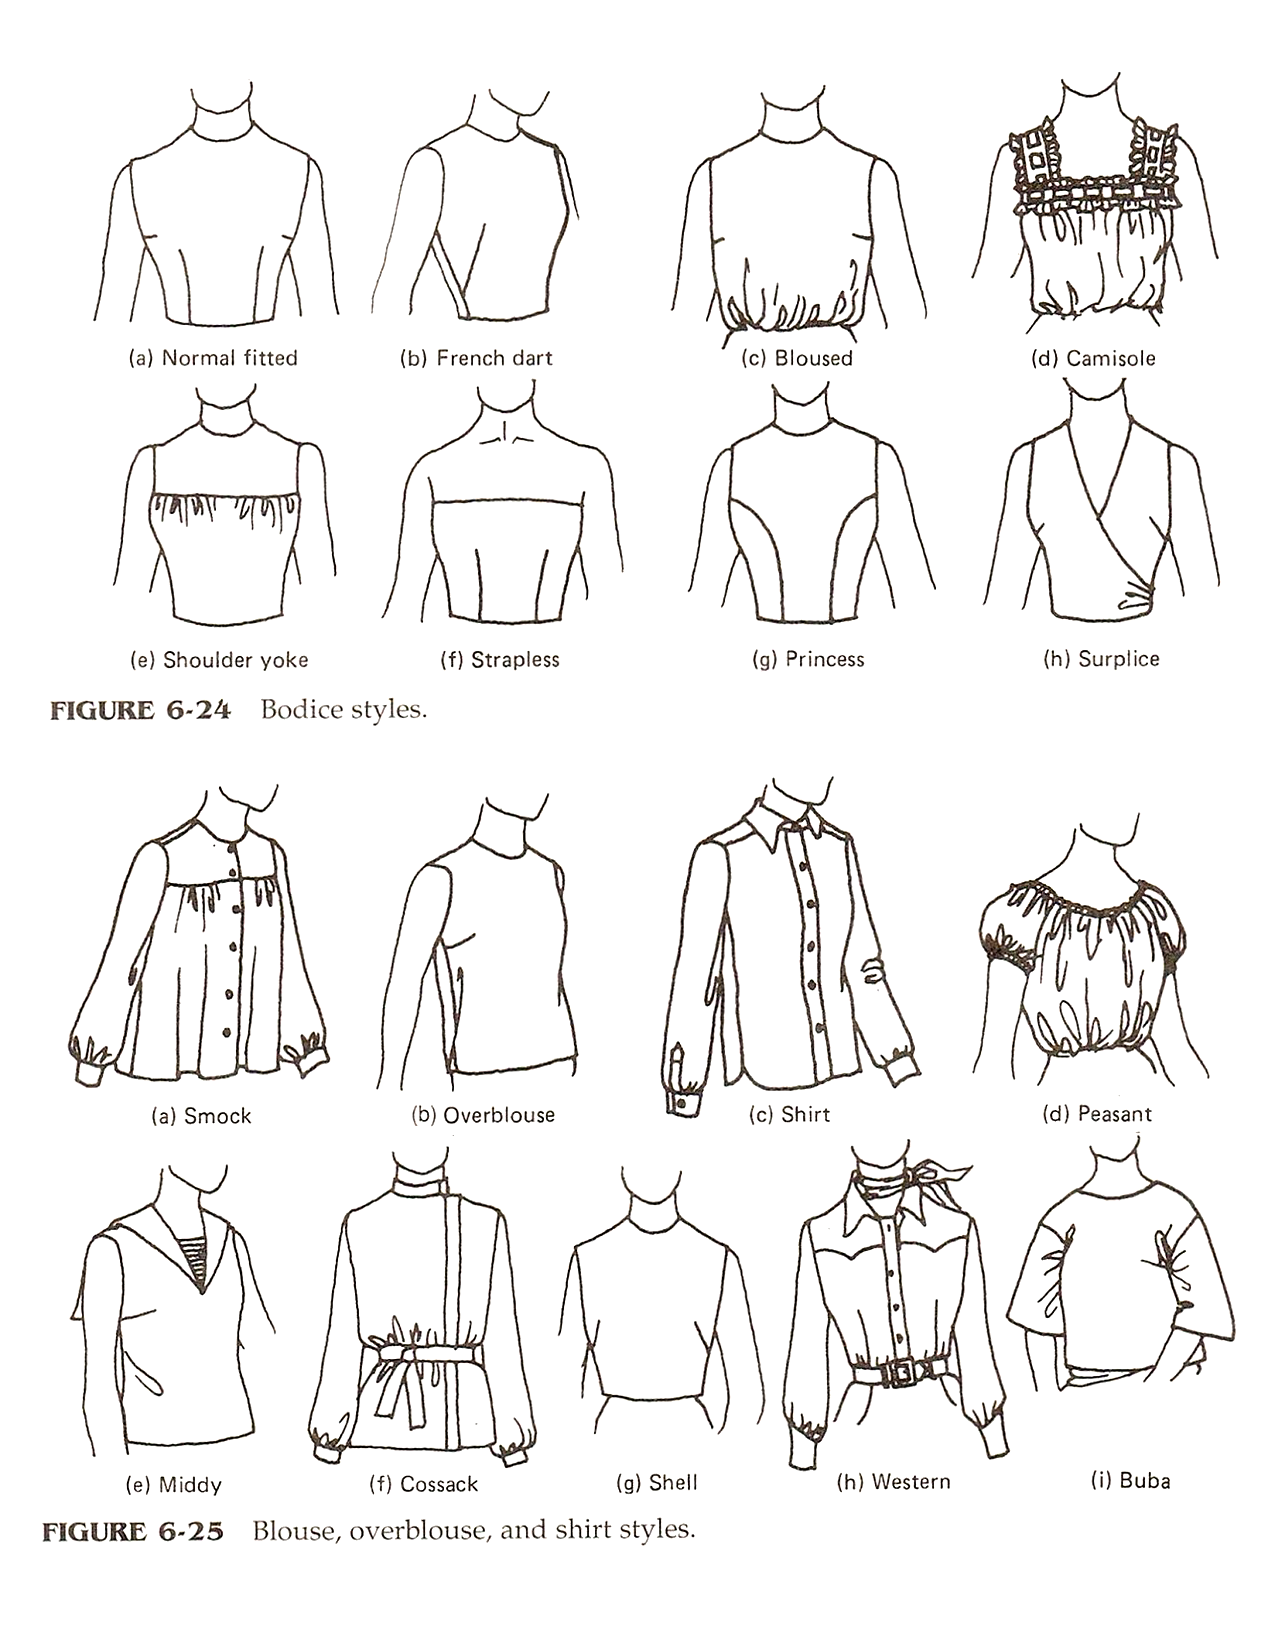 bodice and blouse styles